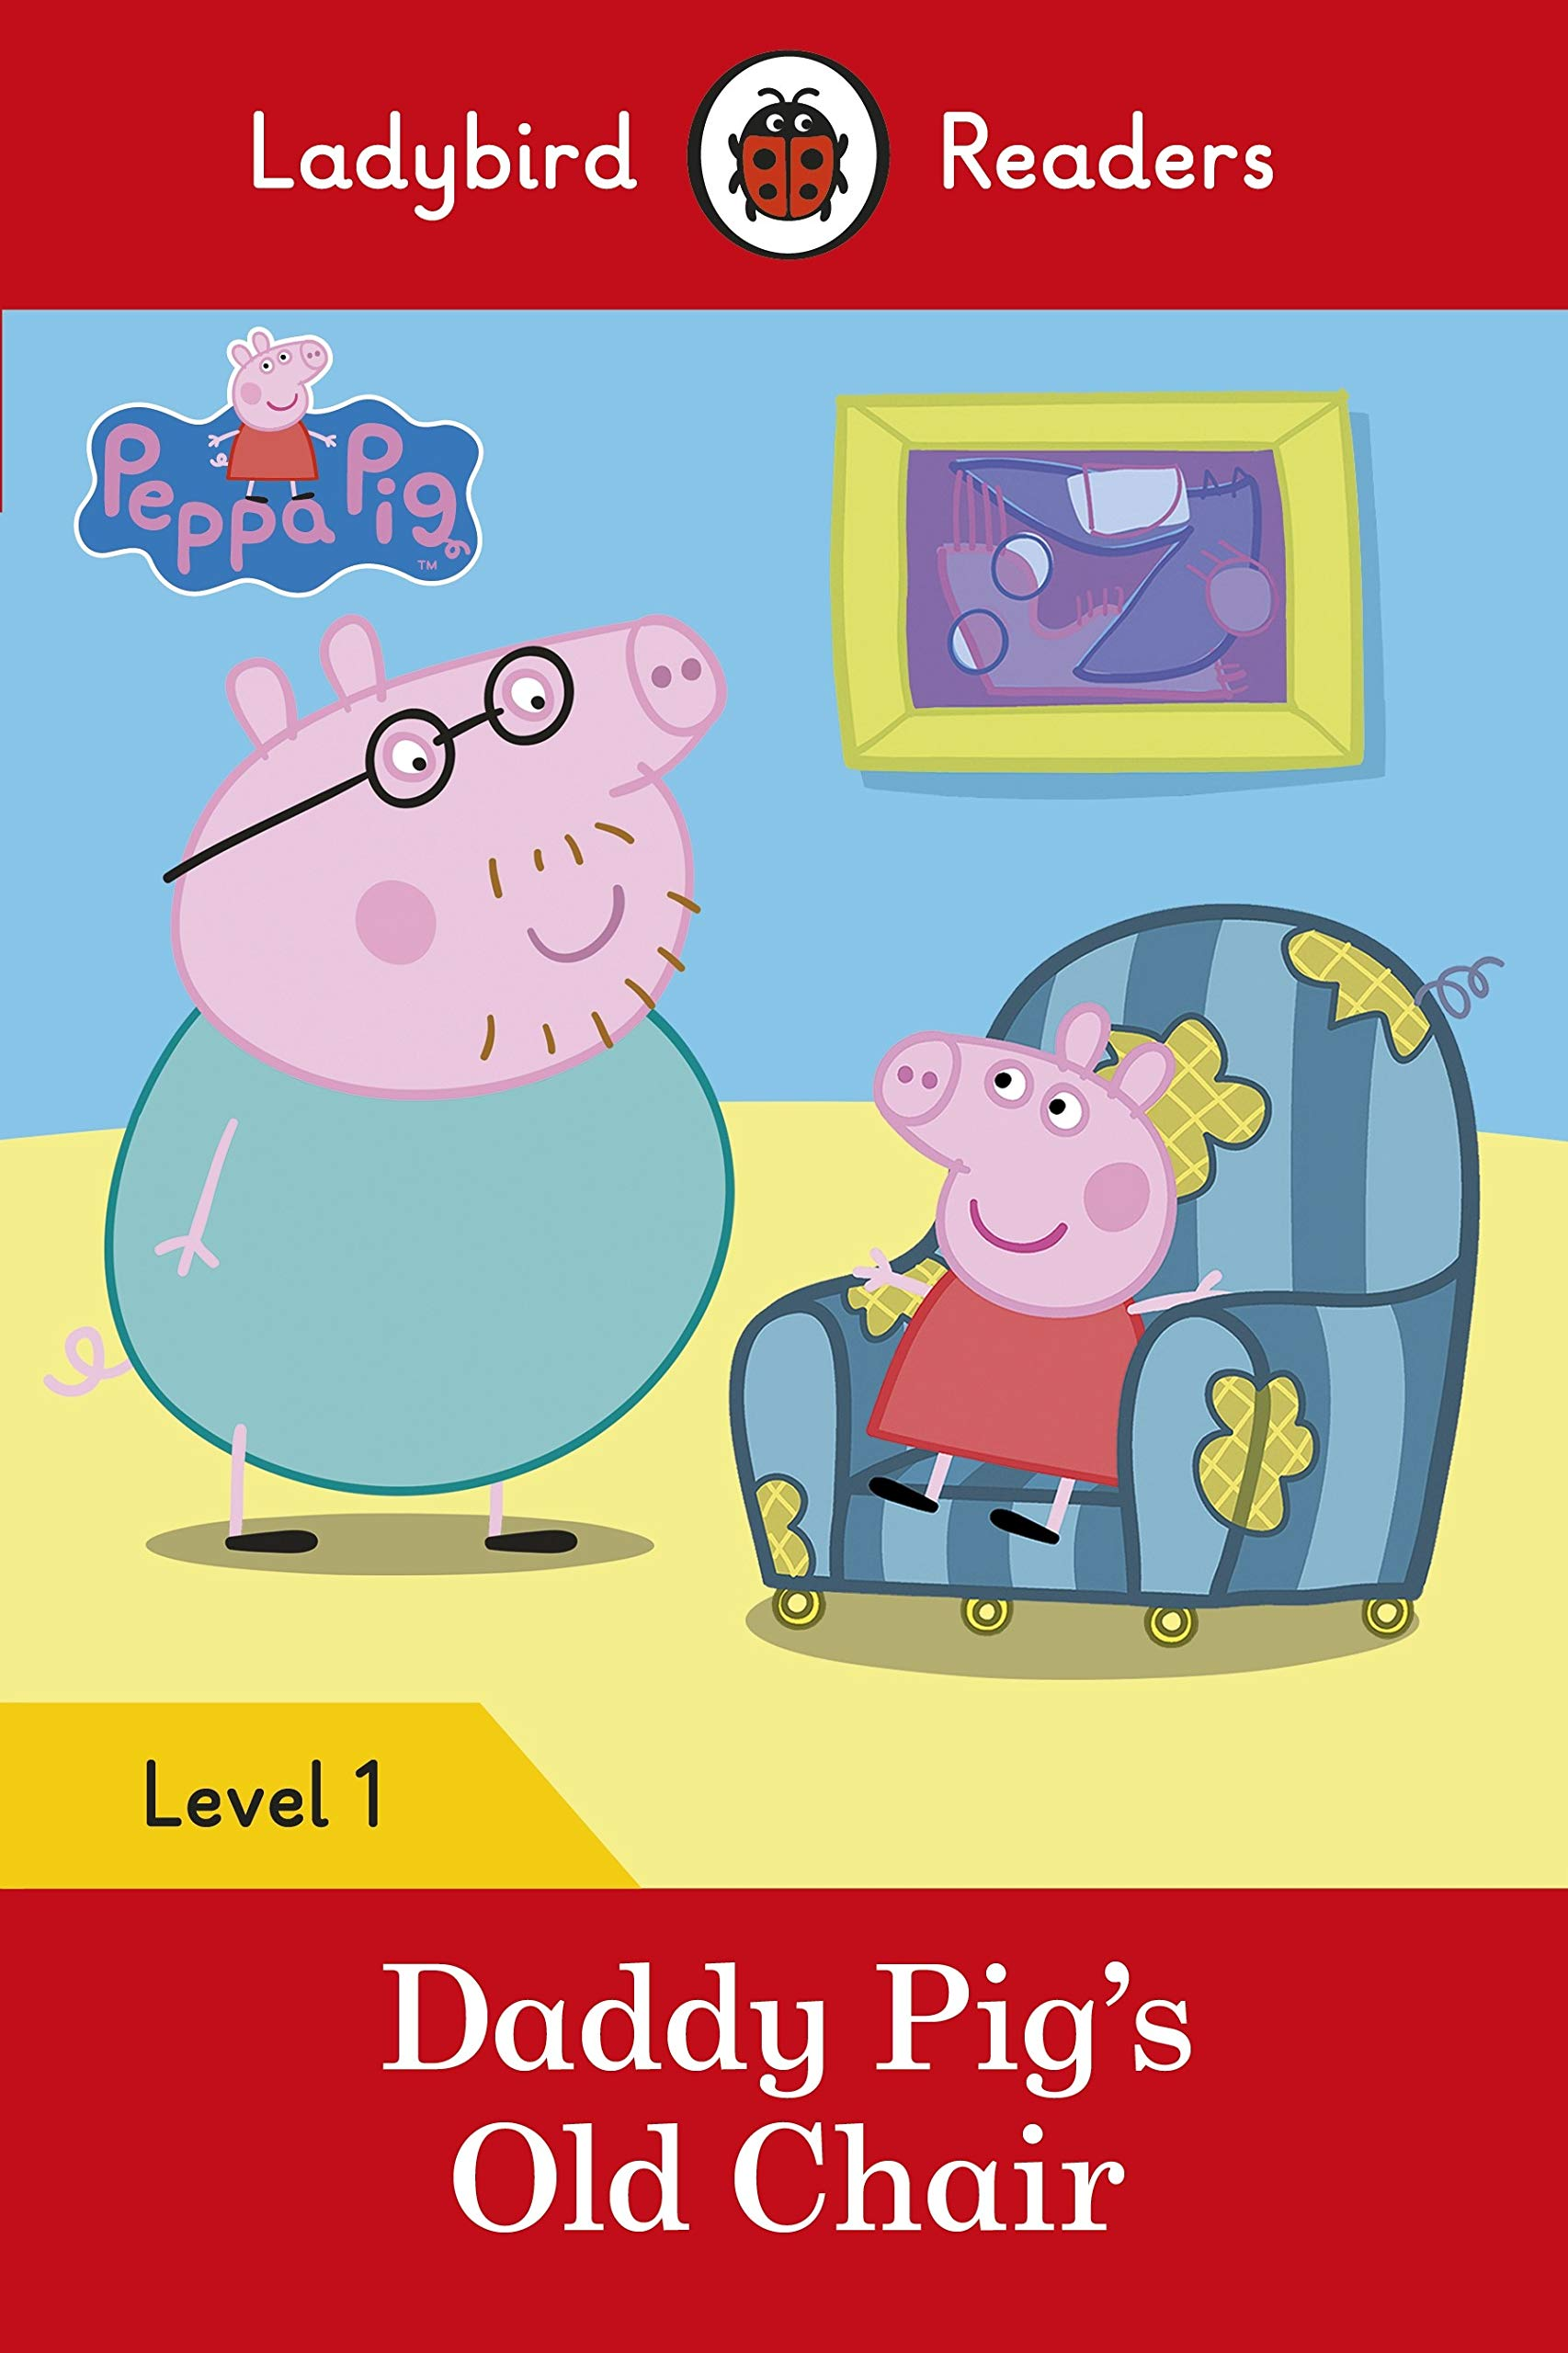 daddy_pigs_old_chair.jpg